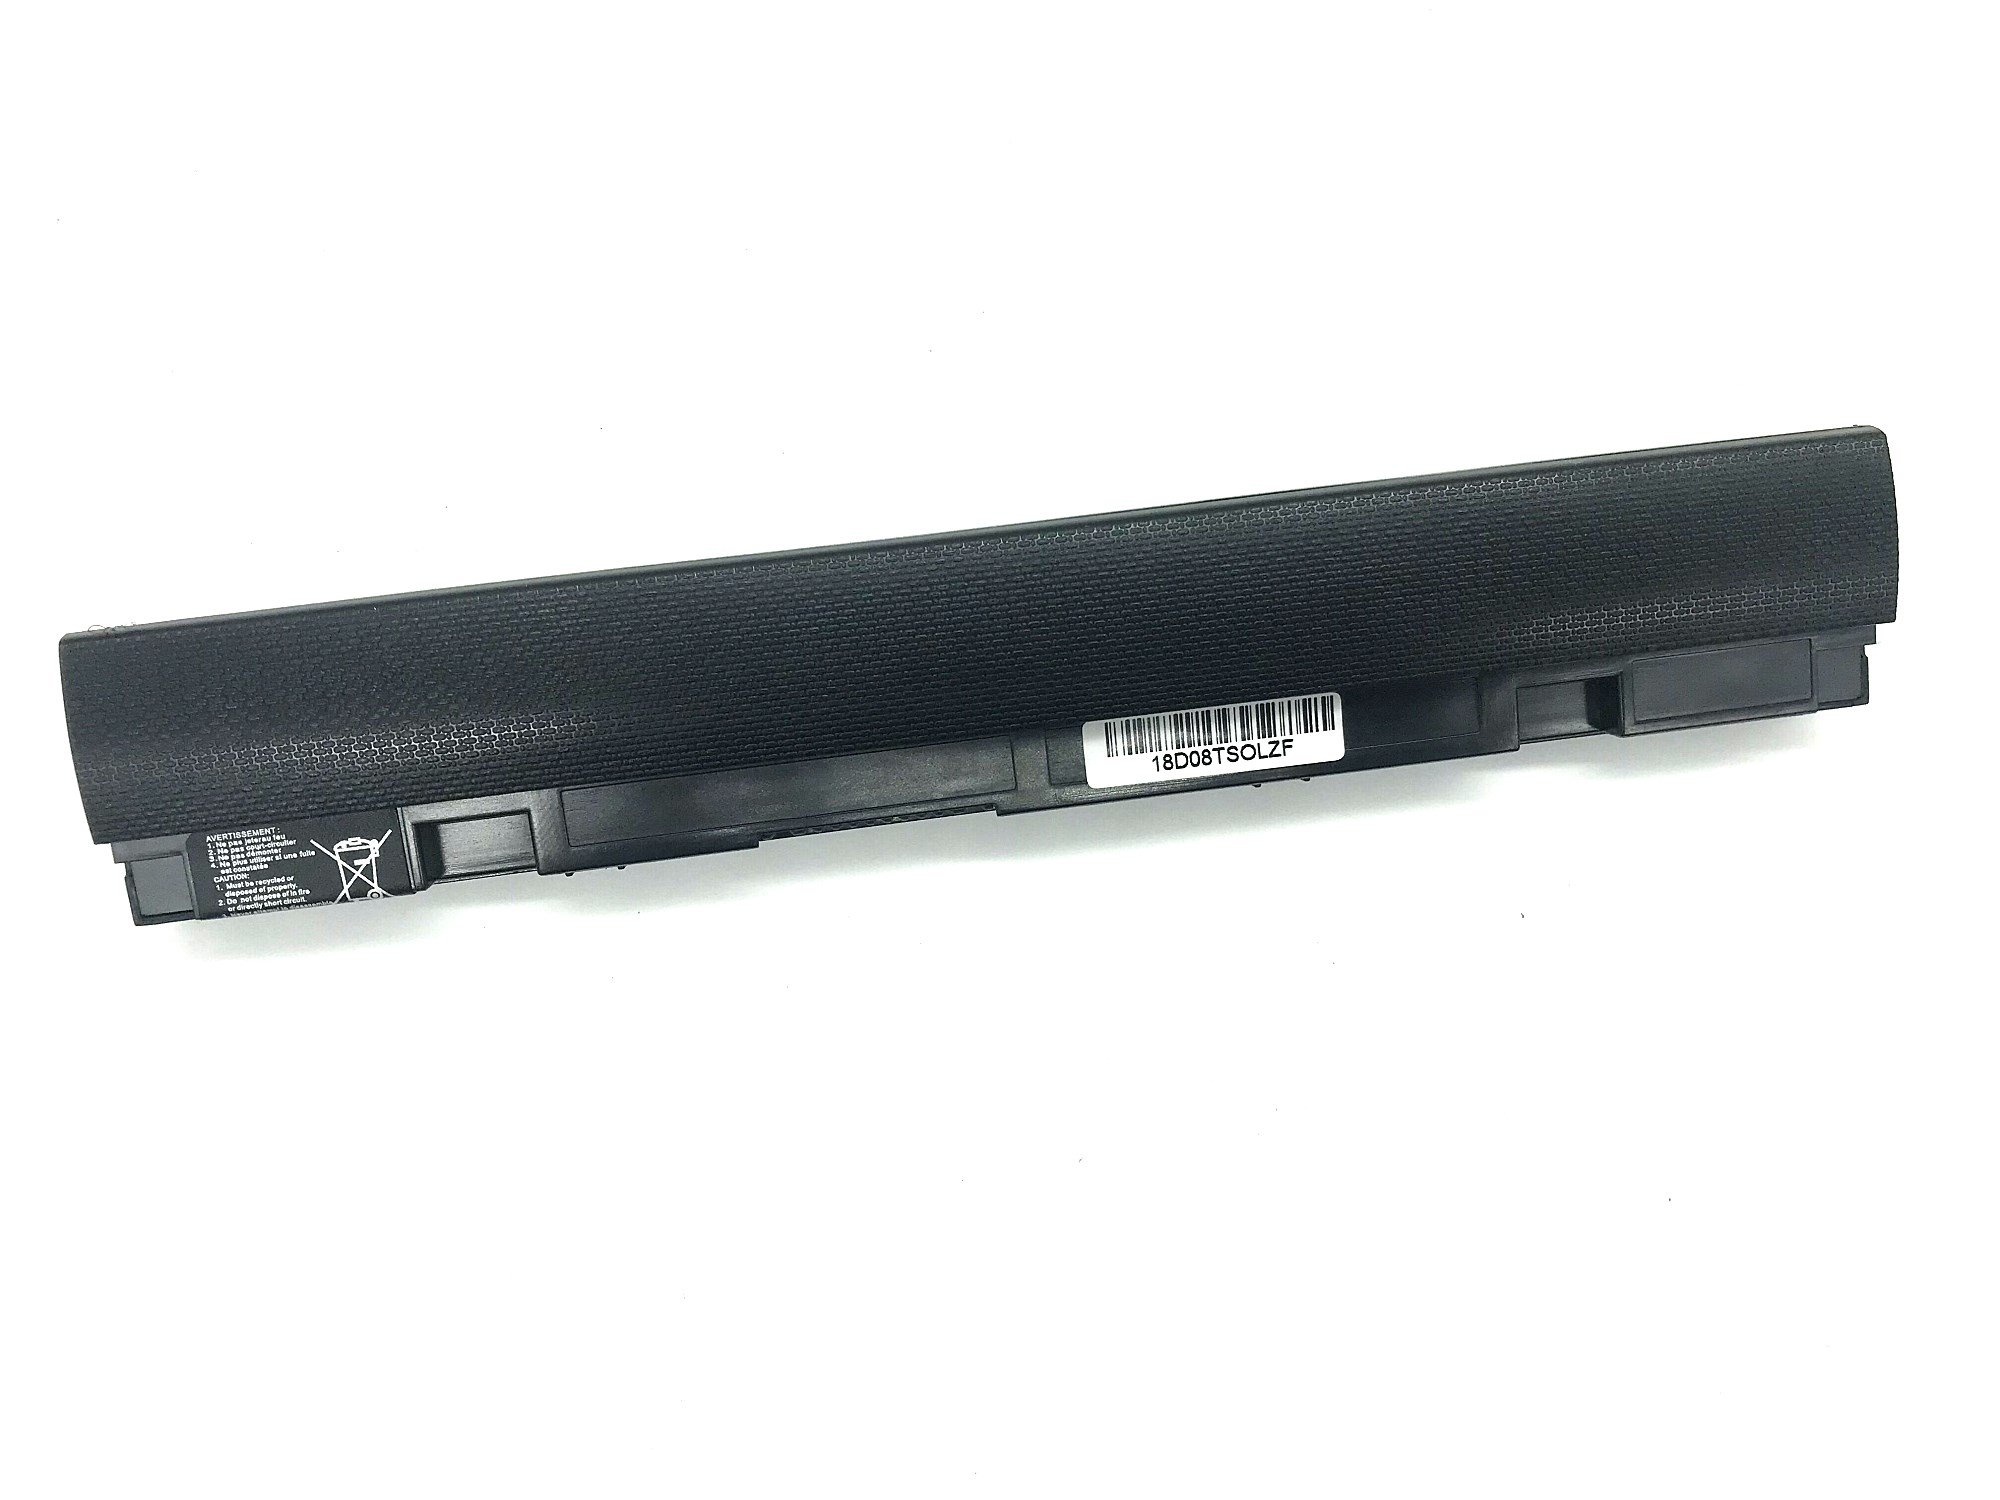 Yafda A31-X101 New Laptop Battery for Asus EEE PC X101 X 101C X101CH X101H series A32-X101 10.8V 2200mAh